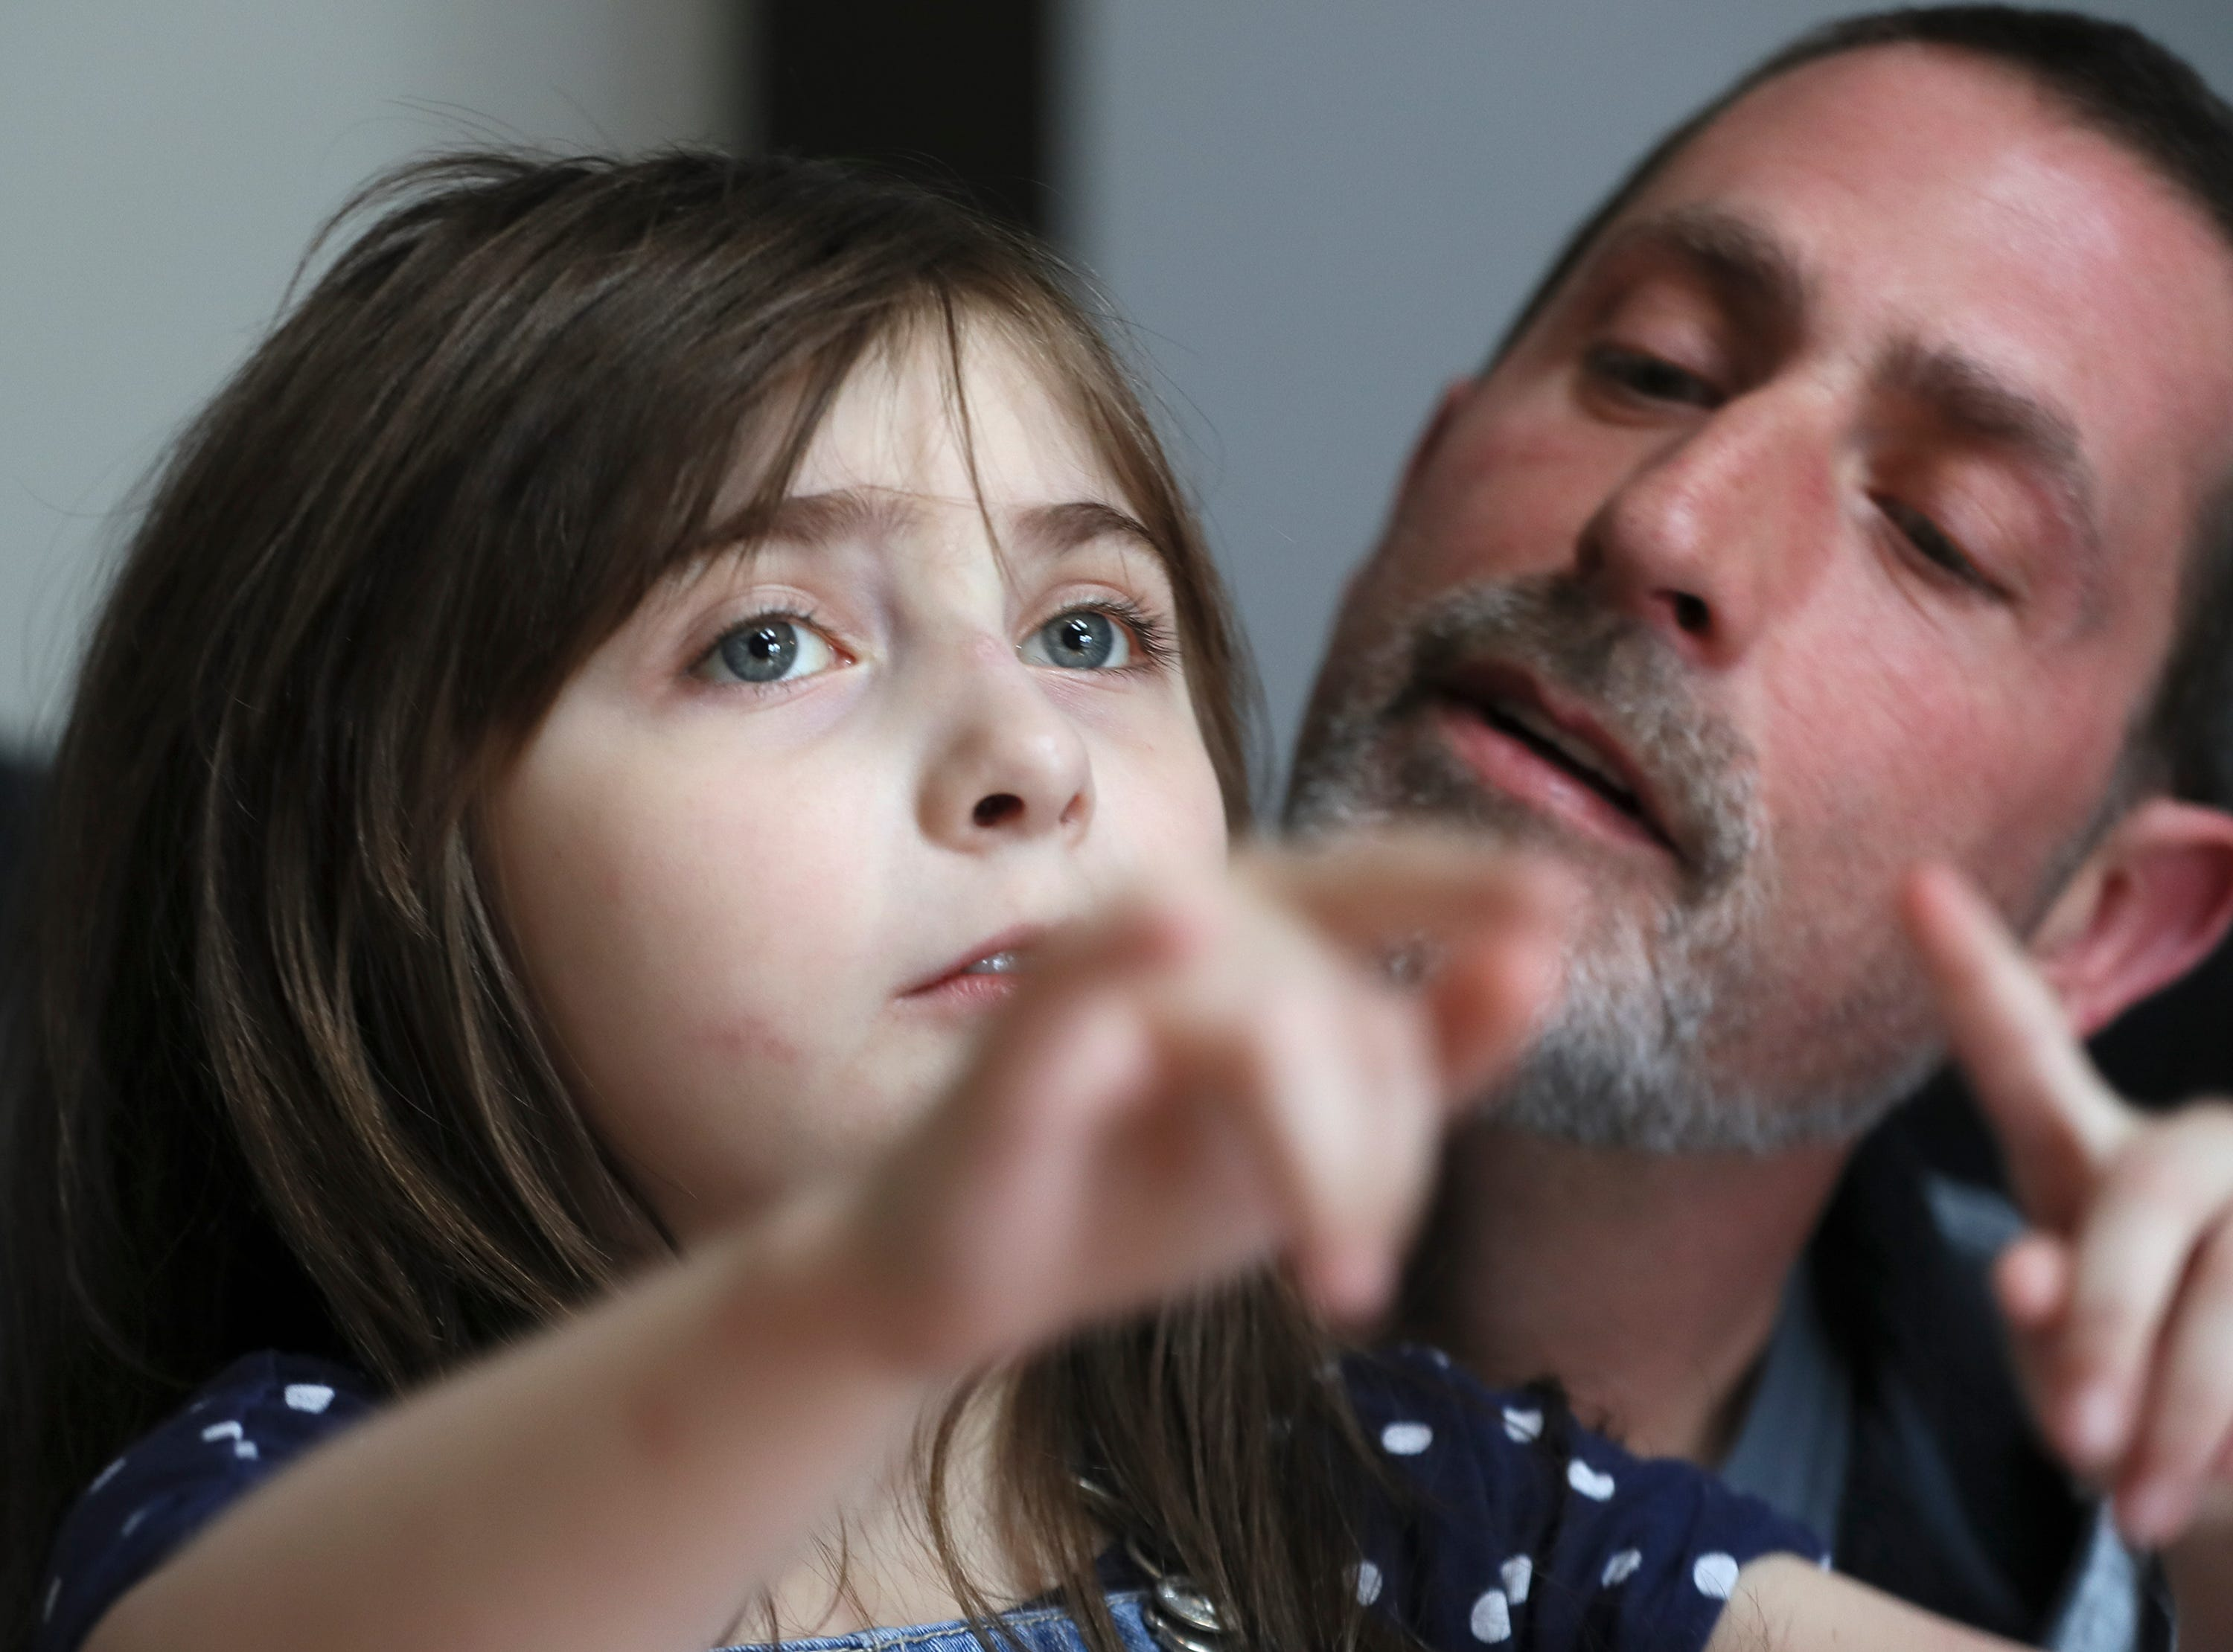 Brian Carroll works on communication with his daughter, Pepper, 7, who has autism and is nonverbal on Feb. 9, 2020.